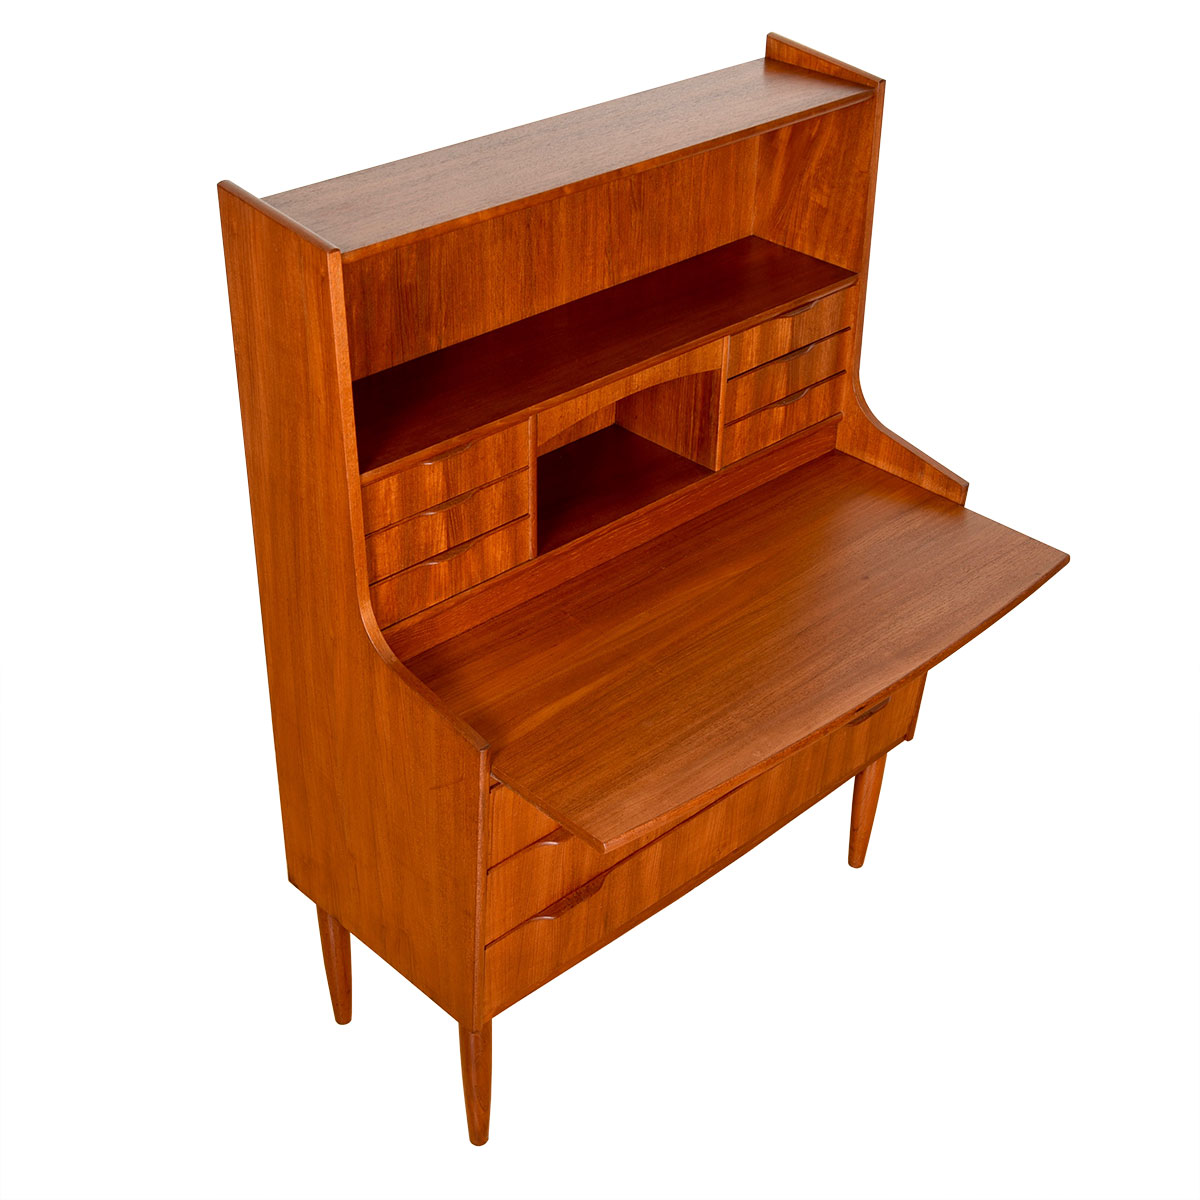 Danish Modern Teak Compact Secretary / Desk with Vanity Mirror